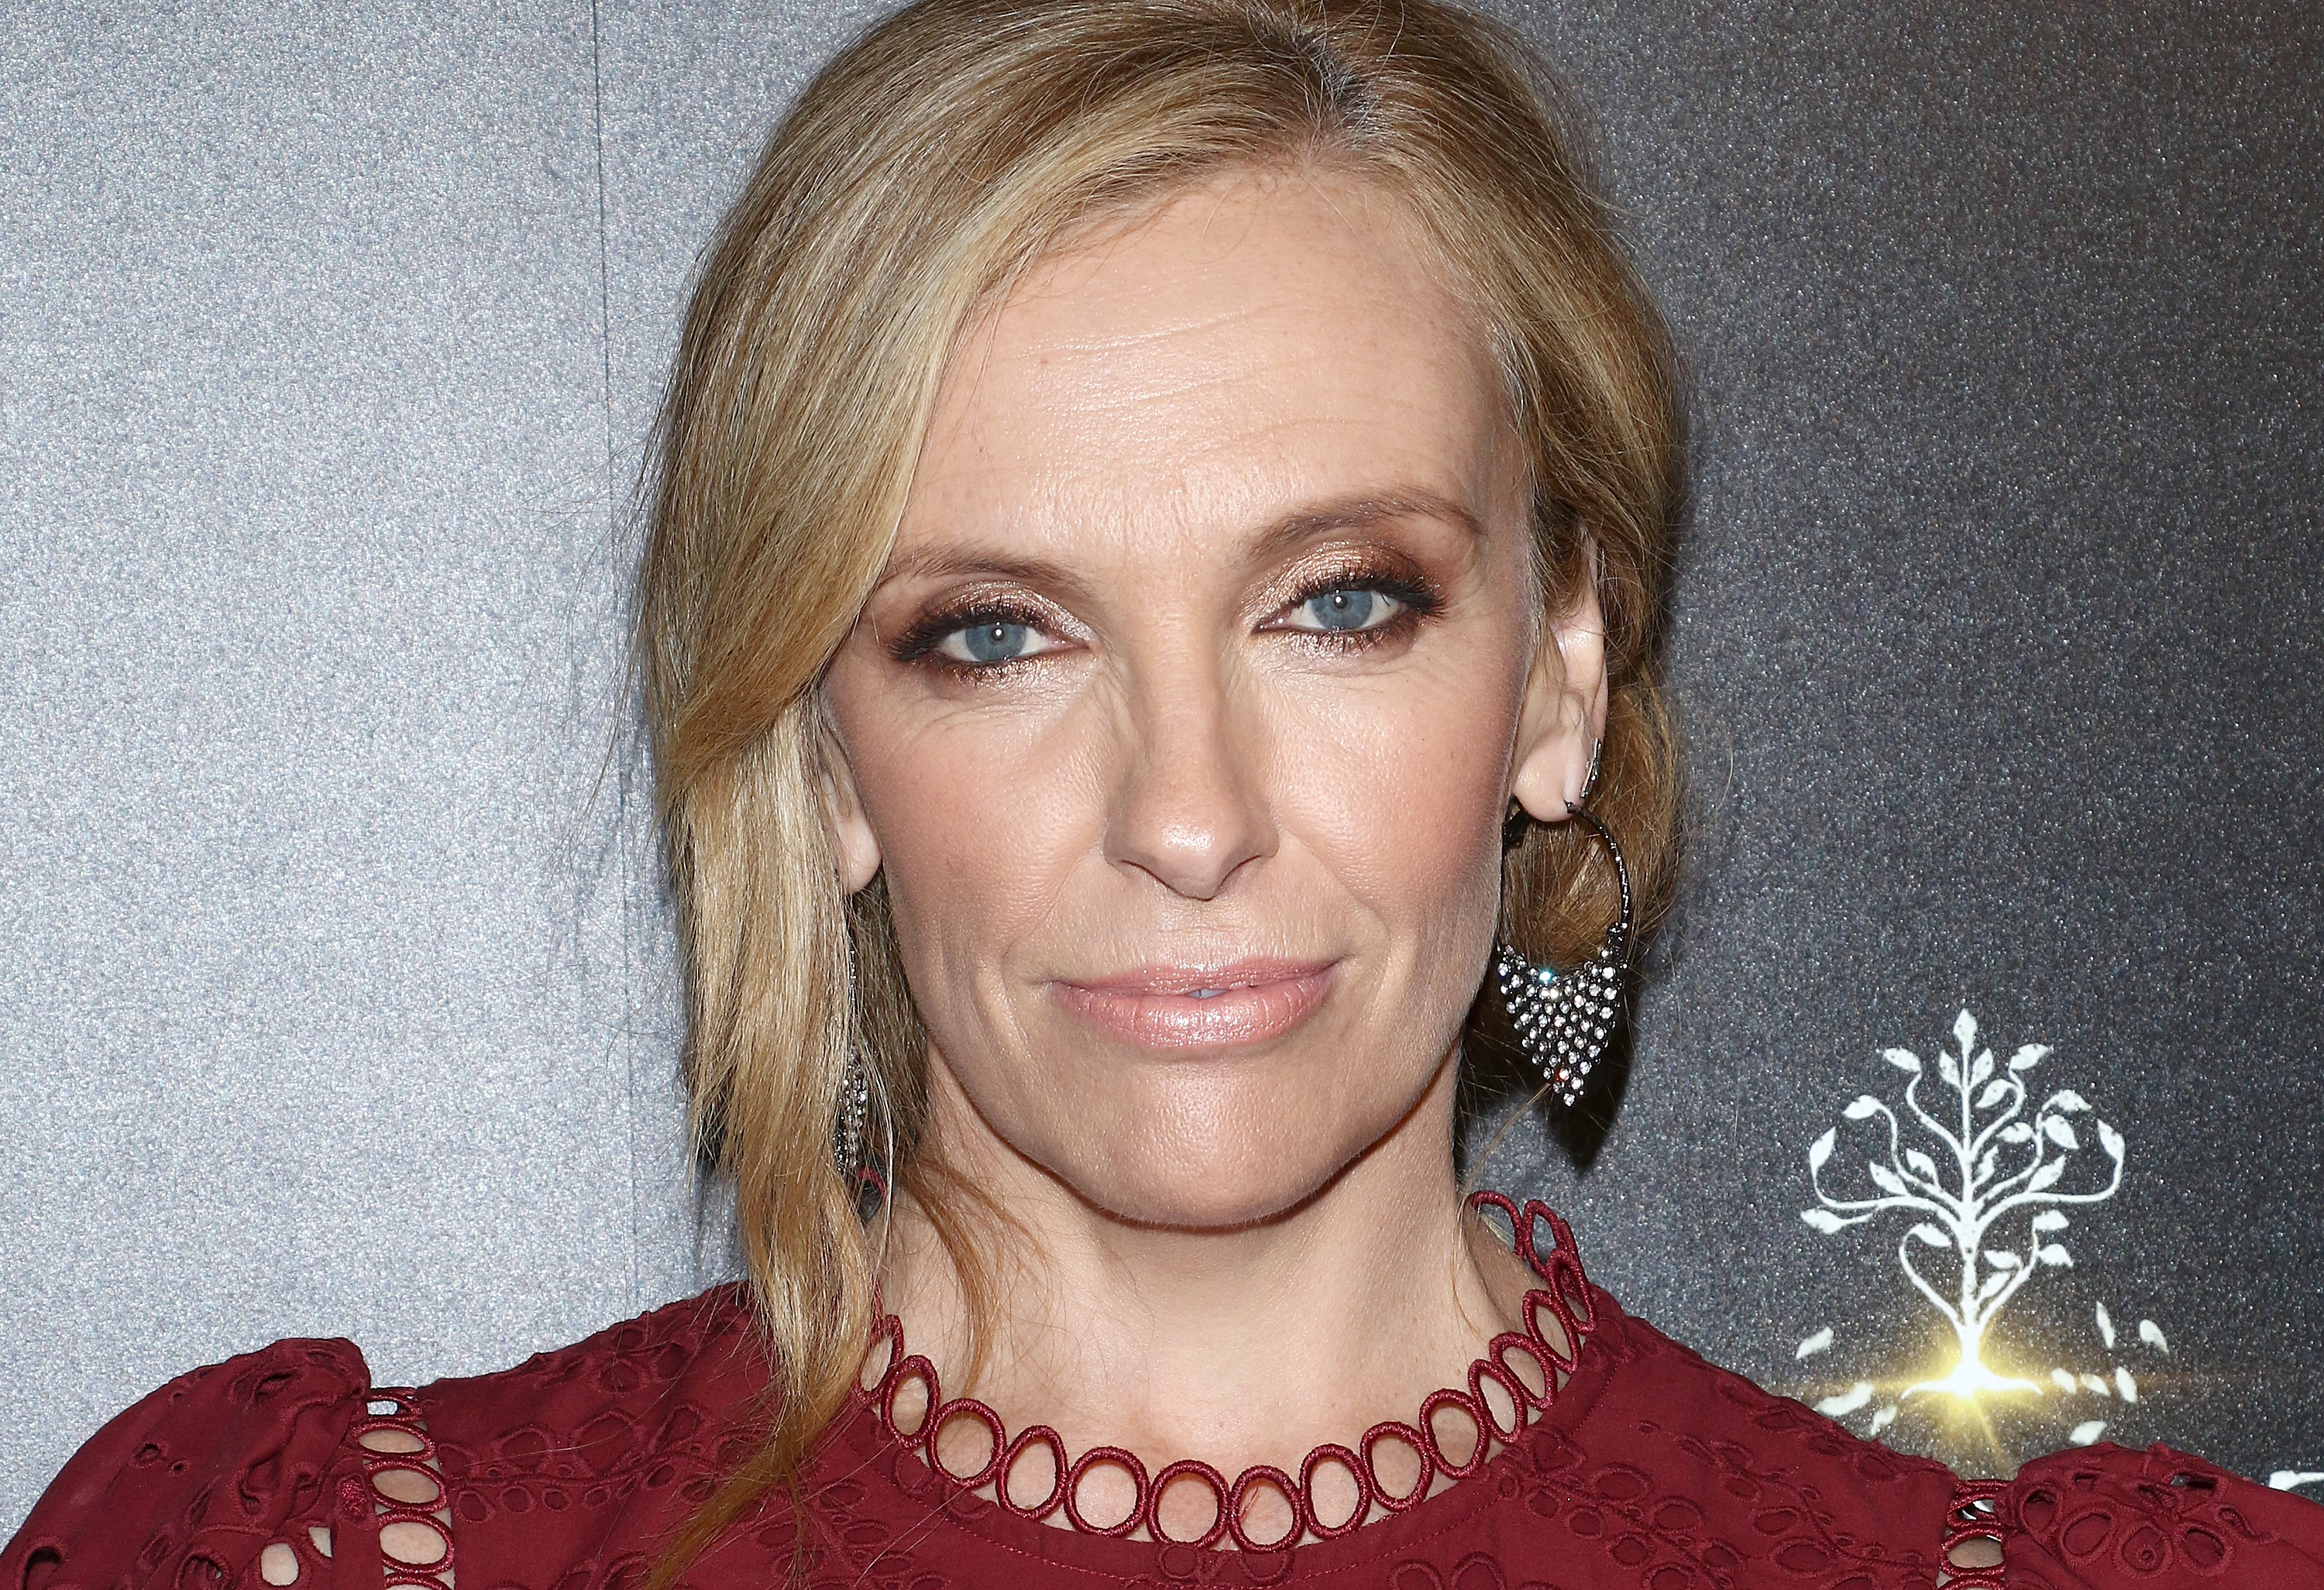 Toni Collette attends the screening of  Hereditary  hosted by A24 at Metrograph on June 5, 2018 in New York City.